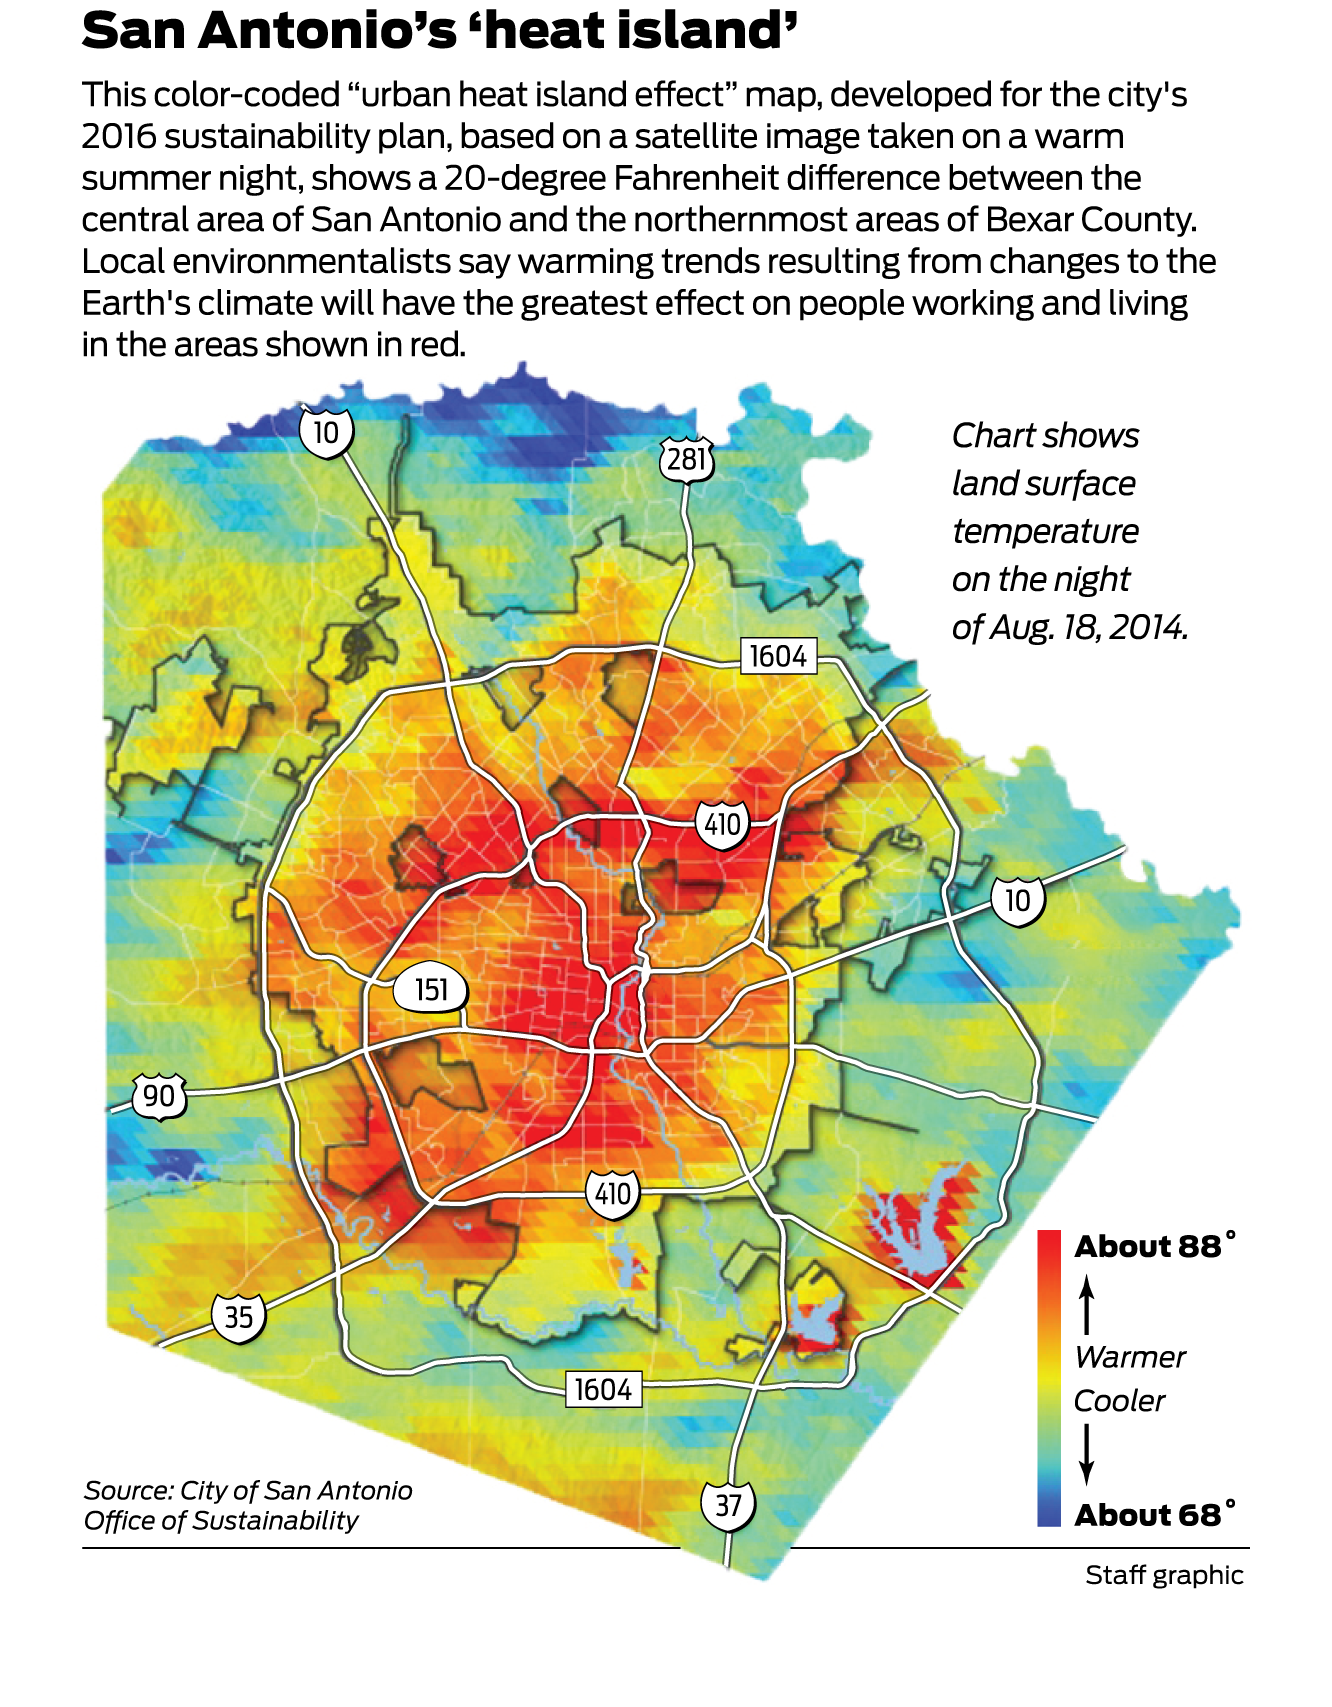 Heat map of San Antonio conveys what's at stake in climate ... San Antonio Map on south tx map, district of columbia map, united states map, honolulu map, usa map, salt lake city map, bexar county map, virginia city map, texas map, poteet tx map, galveston map, converse map, nacogdoches map, ozona tx map, indianapolis map, brazos river map, monterrey map, santa fe map, los angeles map, lackland air force base map,